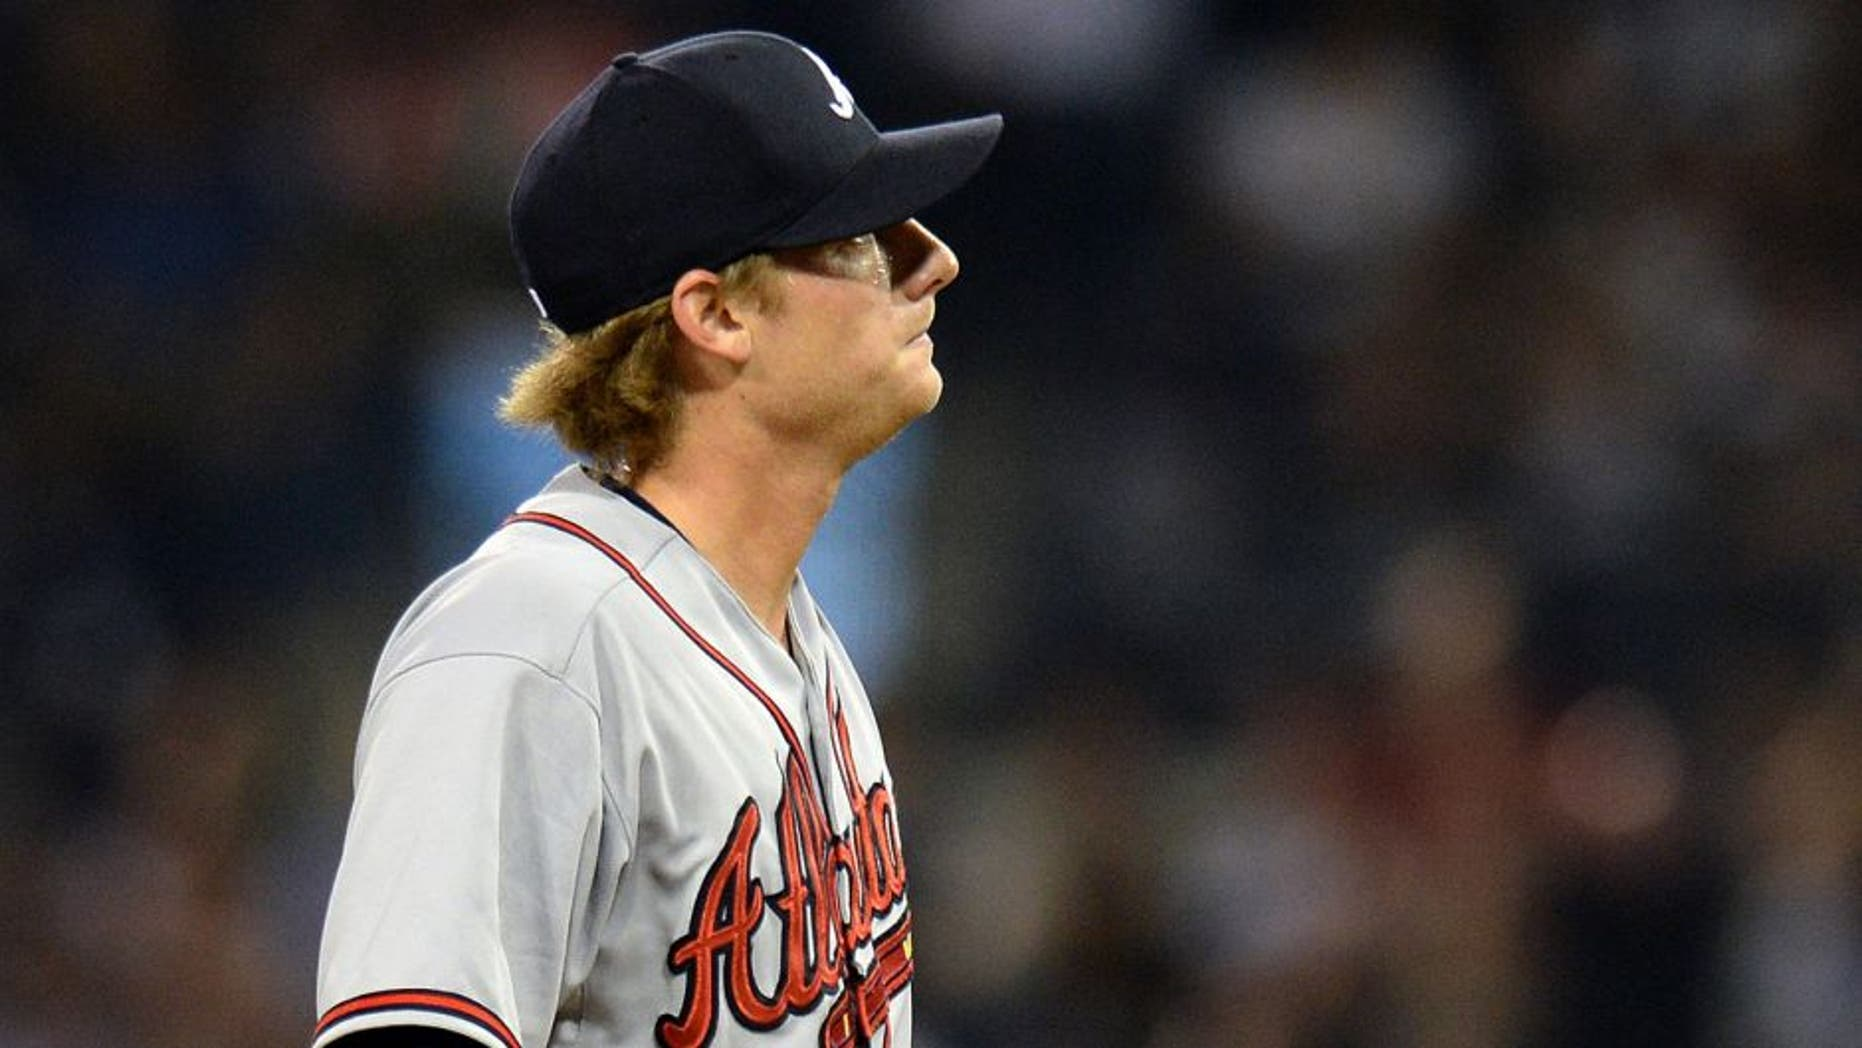 Aug 18, 2015; San Diego, CA, USA; Atlanta Braves relief pitcher Ross Detwiler (56) reacts during the sixth inning against the San Diego Padres at Petco Park. Mandatory Credit: Jake Roth-USA TODAY Sports